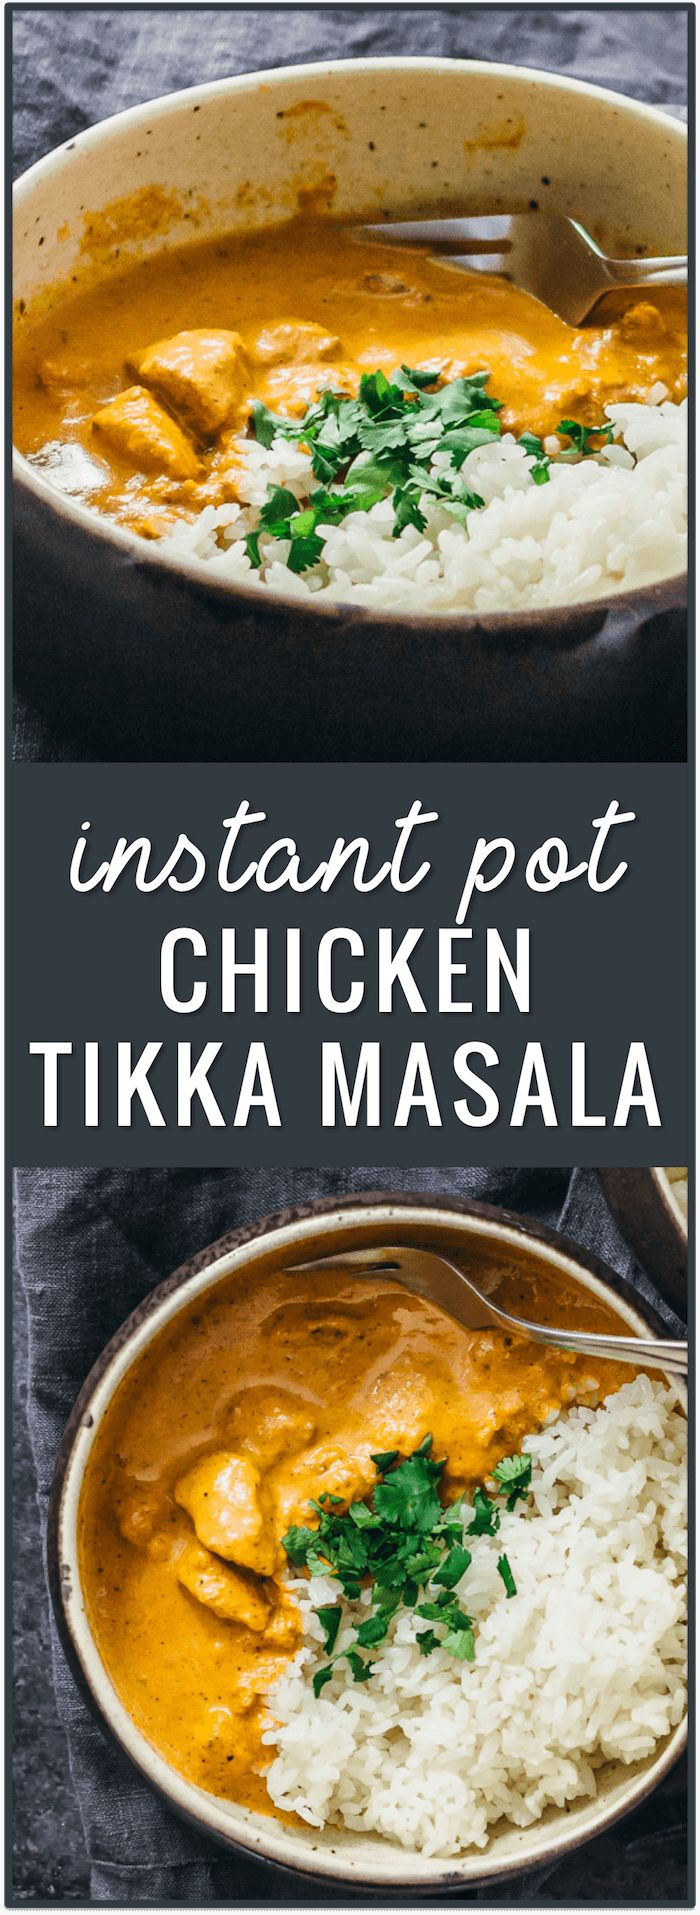 instant pot chicken tikka masala recipe, pressure cooker, chicken curry, dinner, recipe, indian food recipe, easy, asian, spicy, garam masala, fast, simple, basmati rice via @savory_tooth